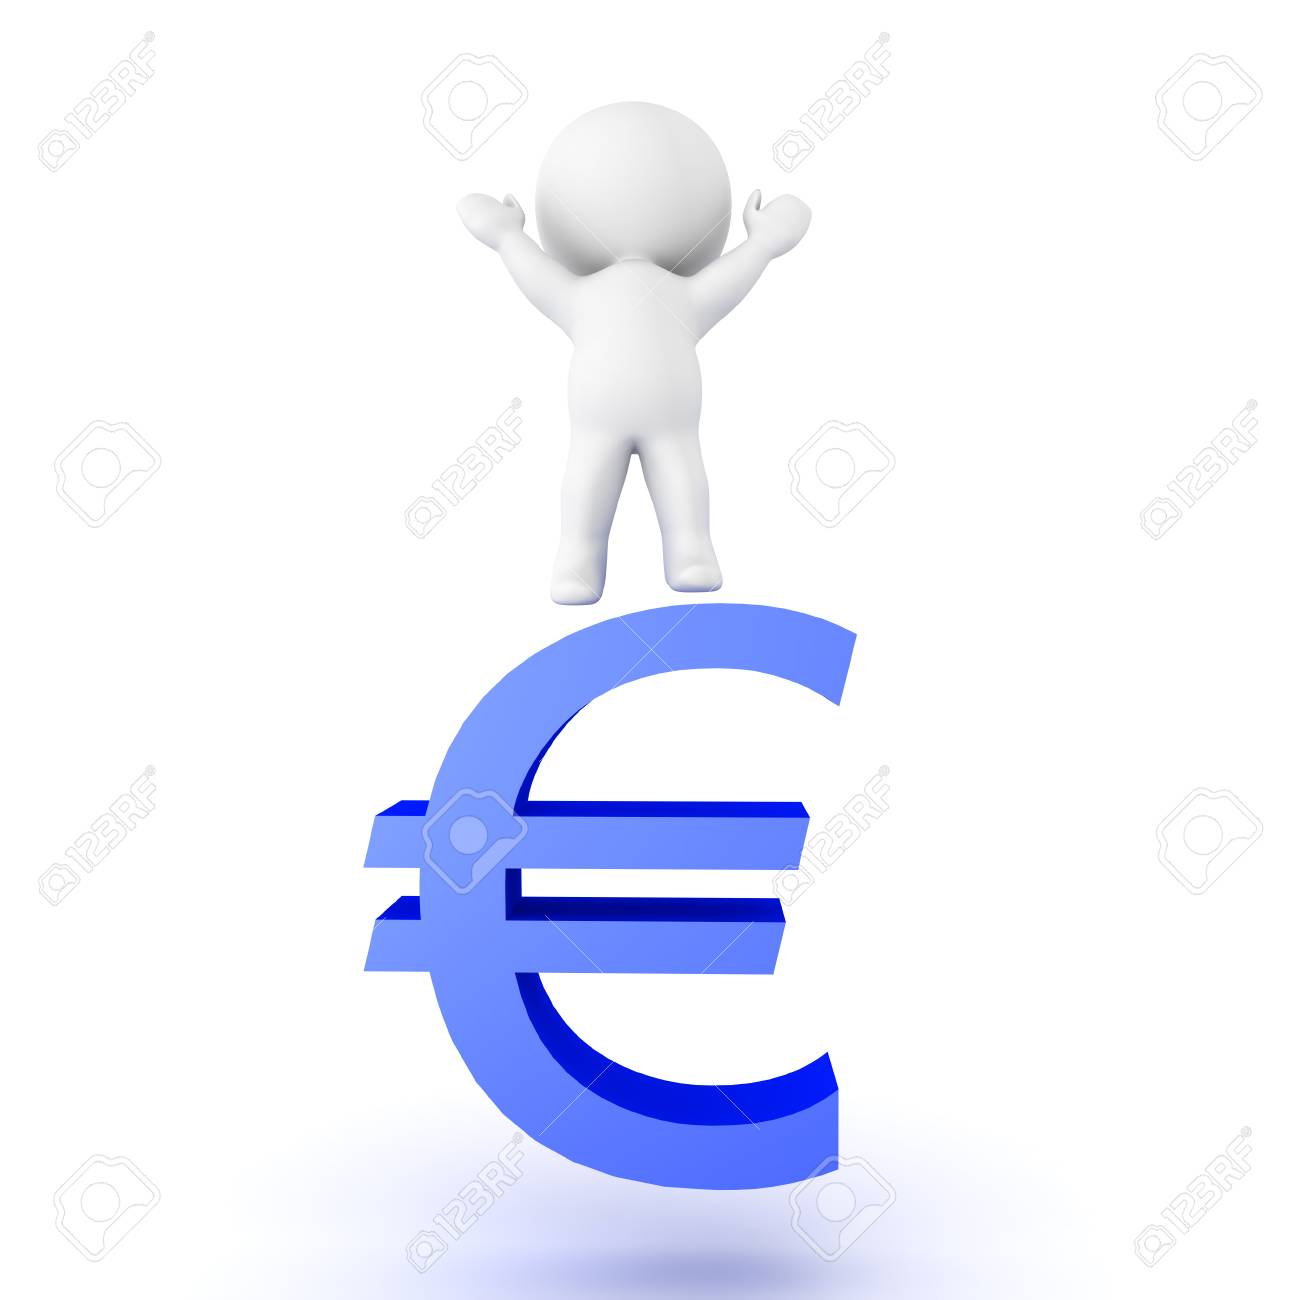 3d Character Jumping On Top Of Blue Euro Currency Symbol Isolated